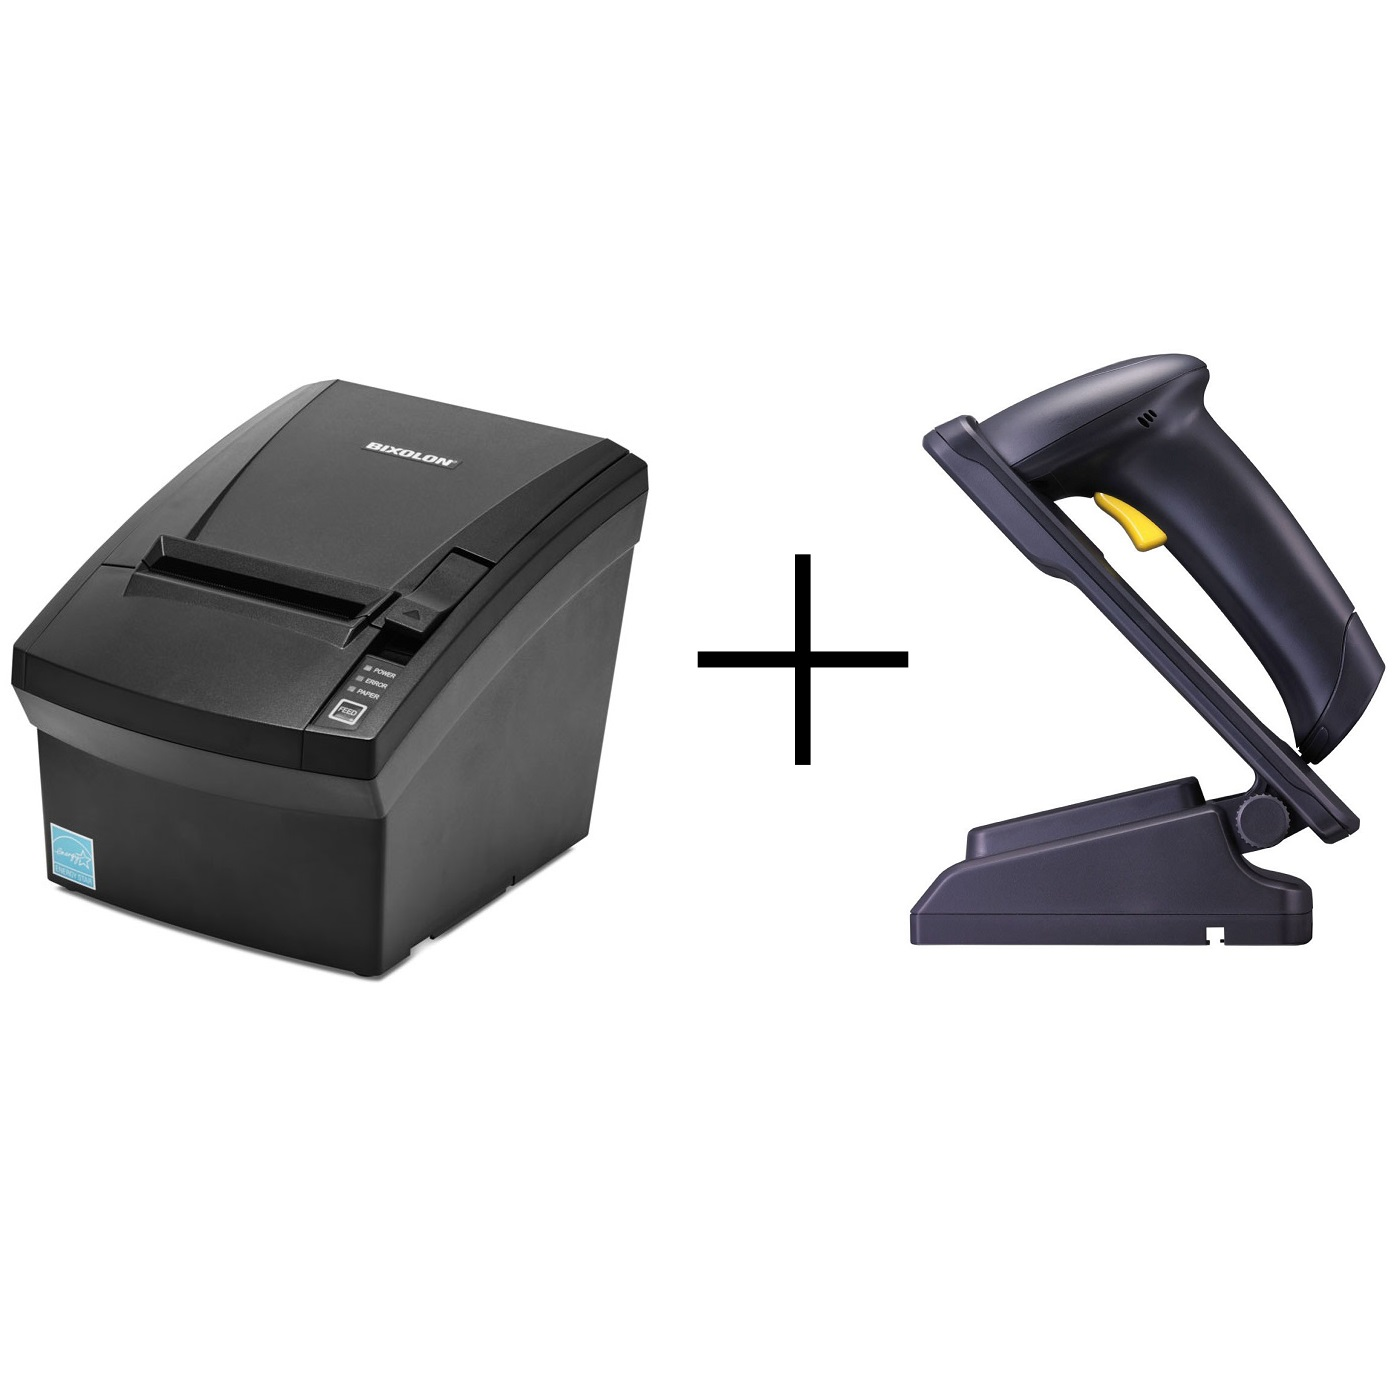 Bixolon SRP330II + Cipherlab 1500 Scanner Bundle